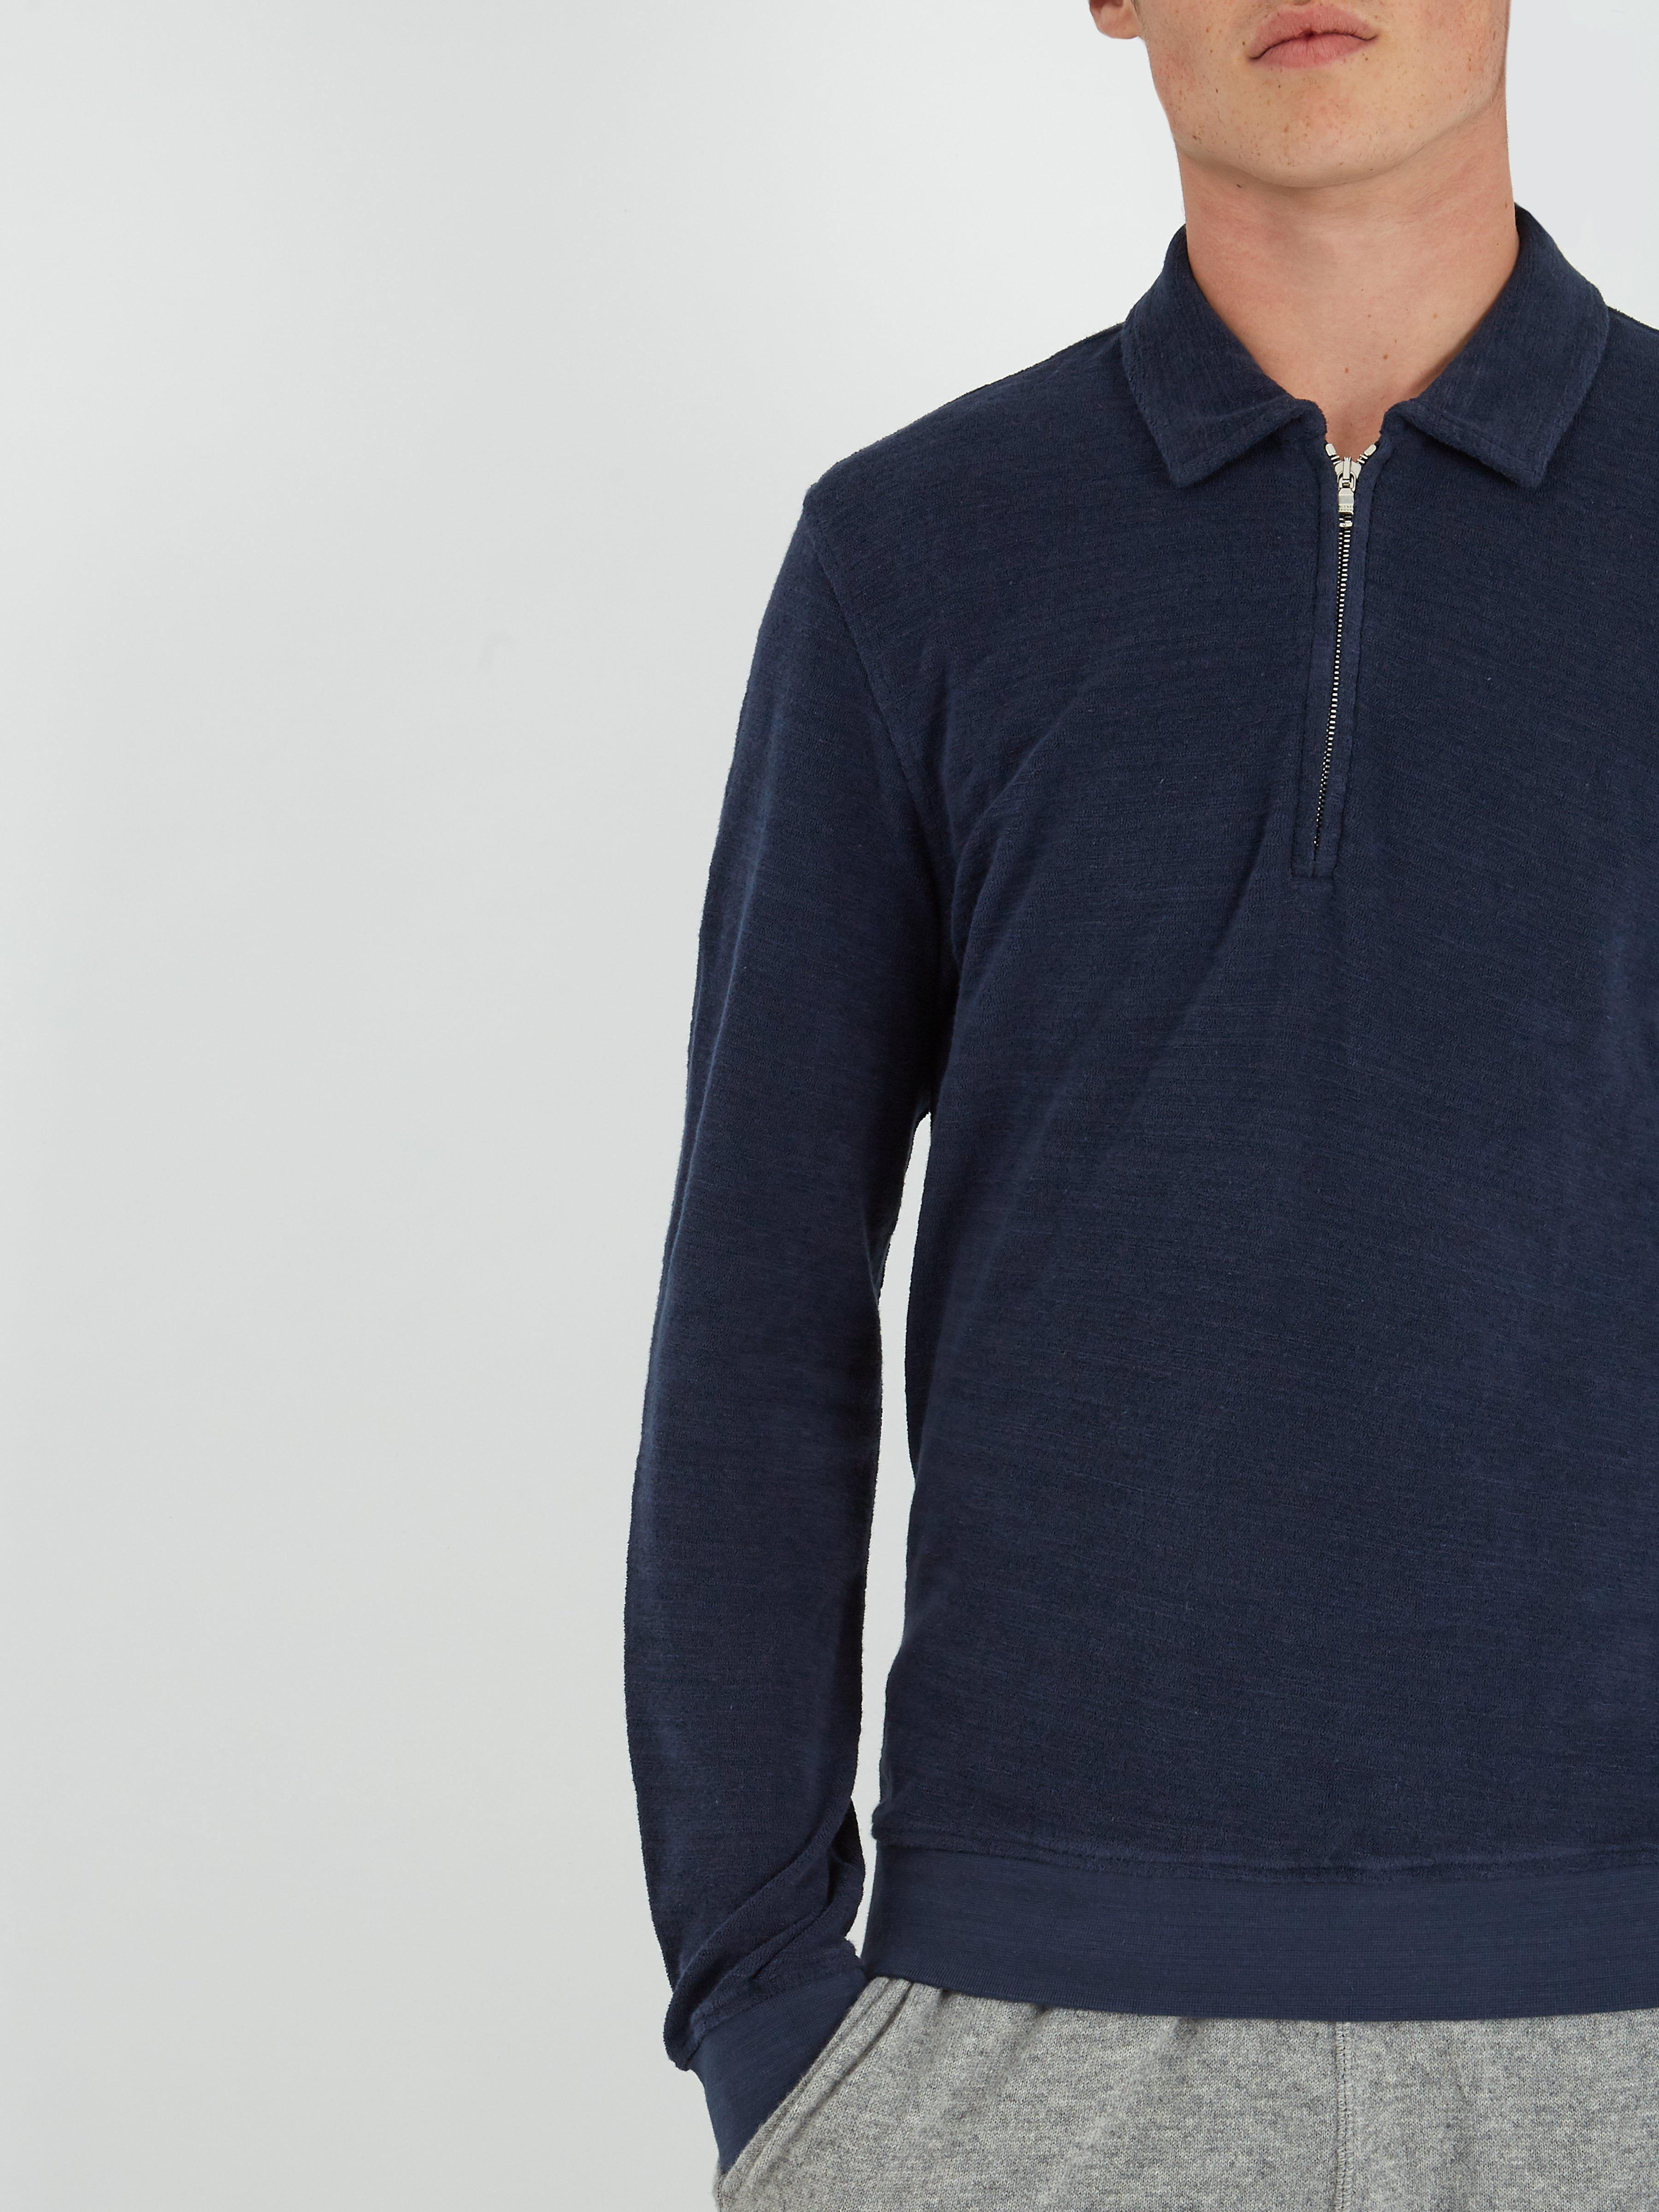 Orlebar Brown Cotton Ritson French Terry-towelling Top in Navy (Blue) for Men